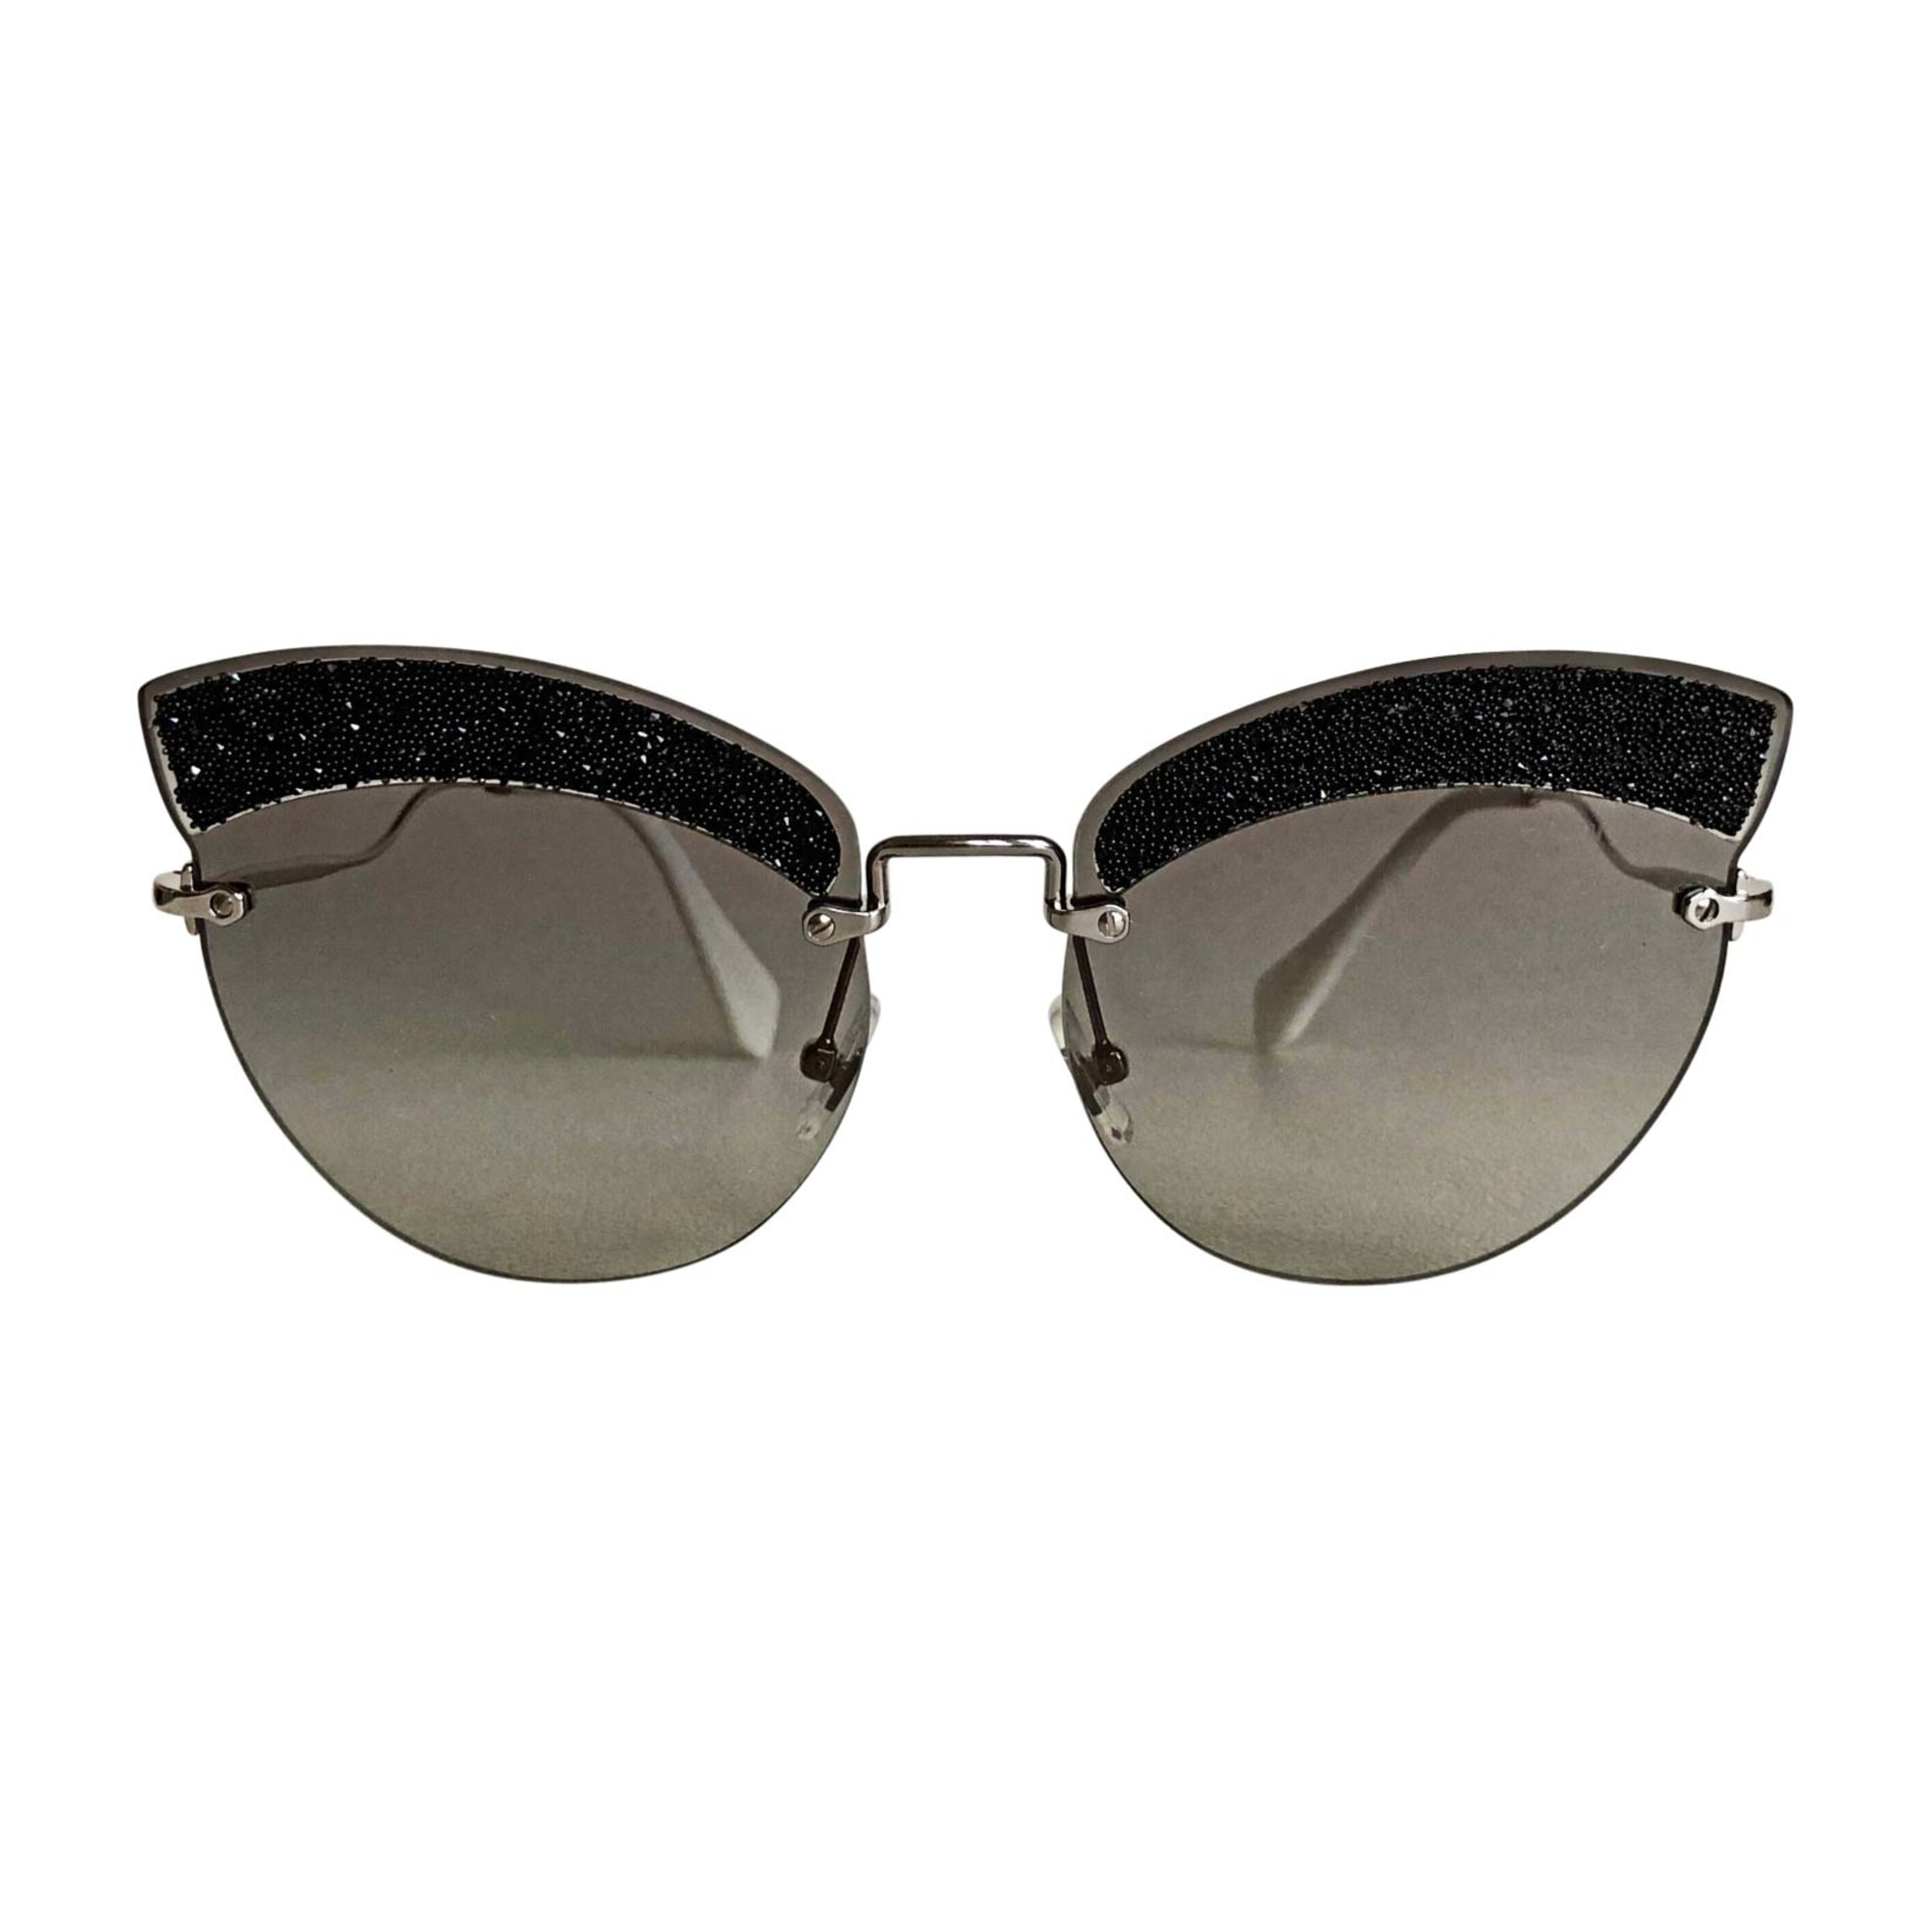 Sunglasses MIU MIU Black